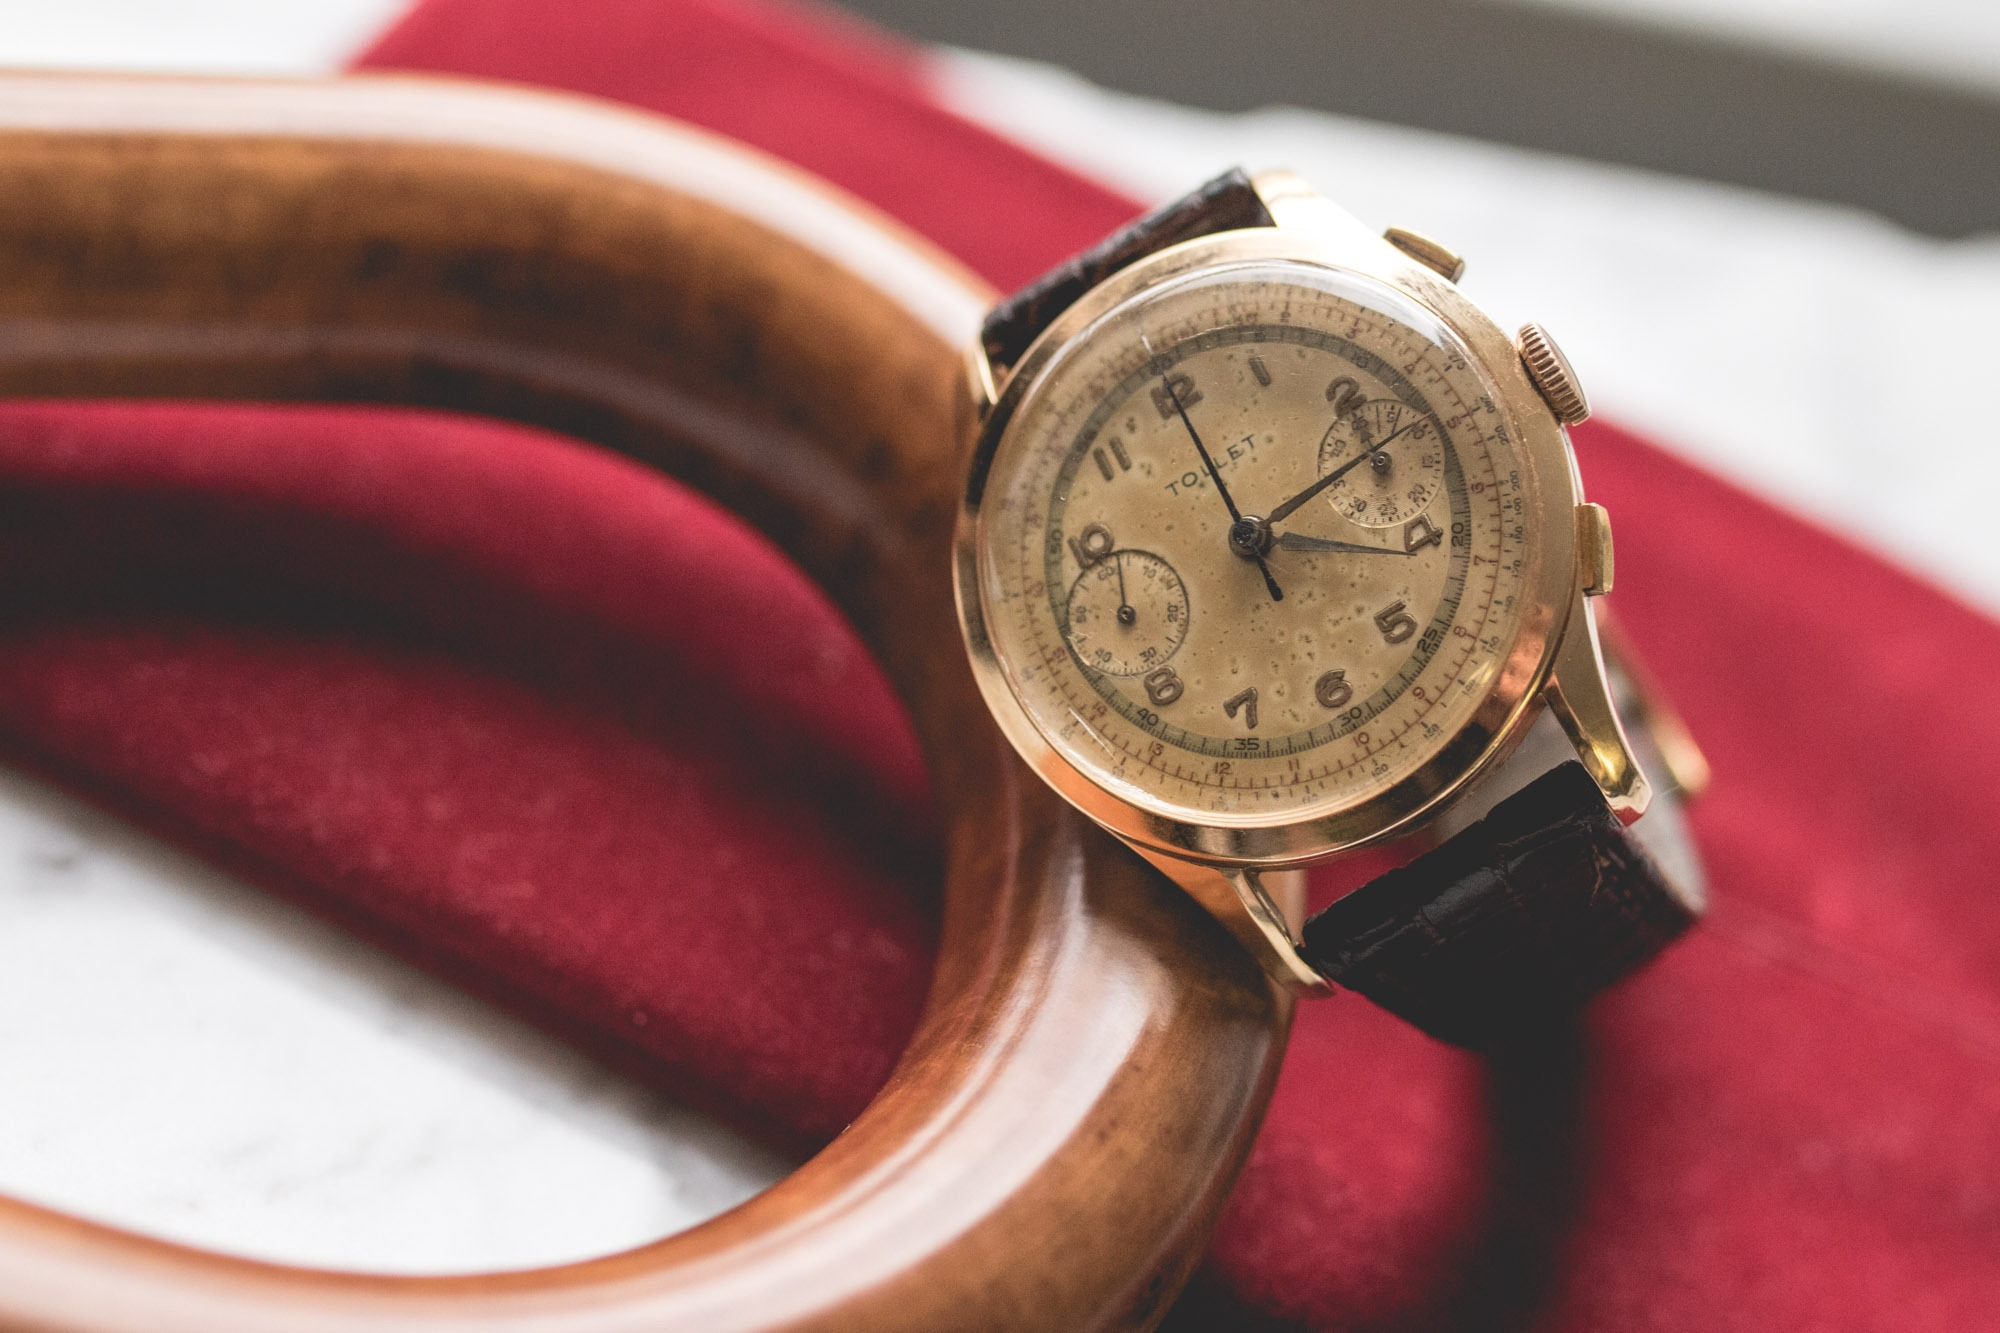 Walter - Formidable - Chronographe vintage Tollet